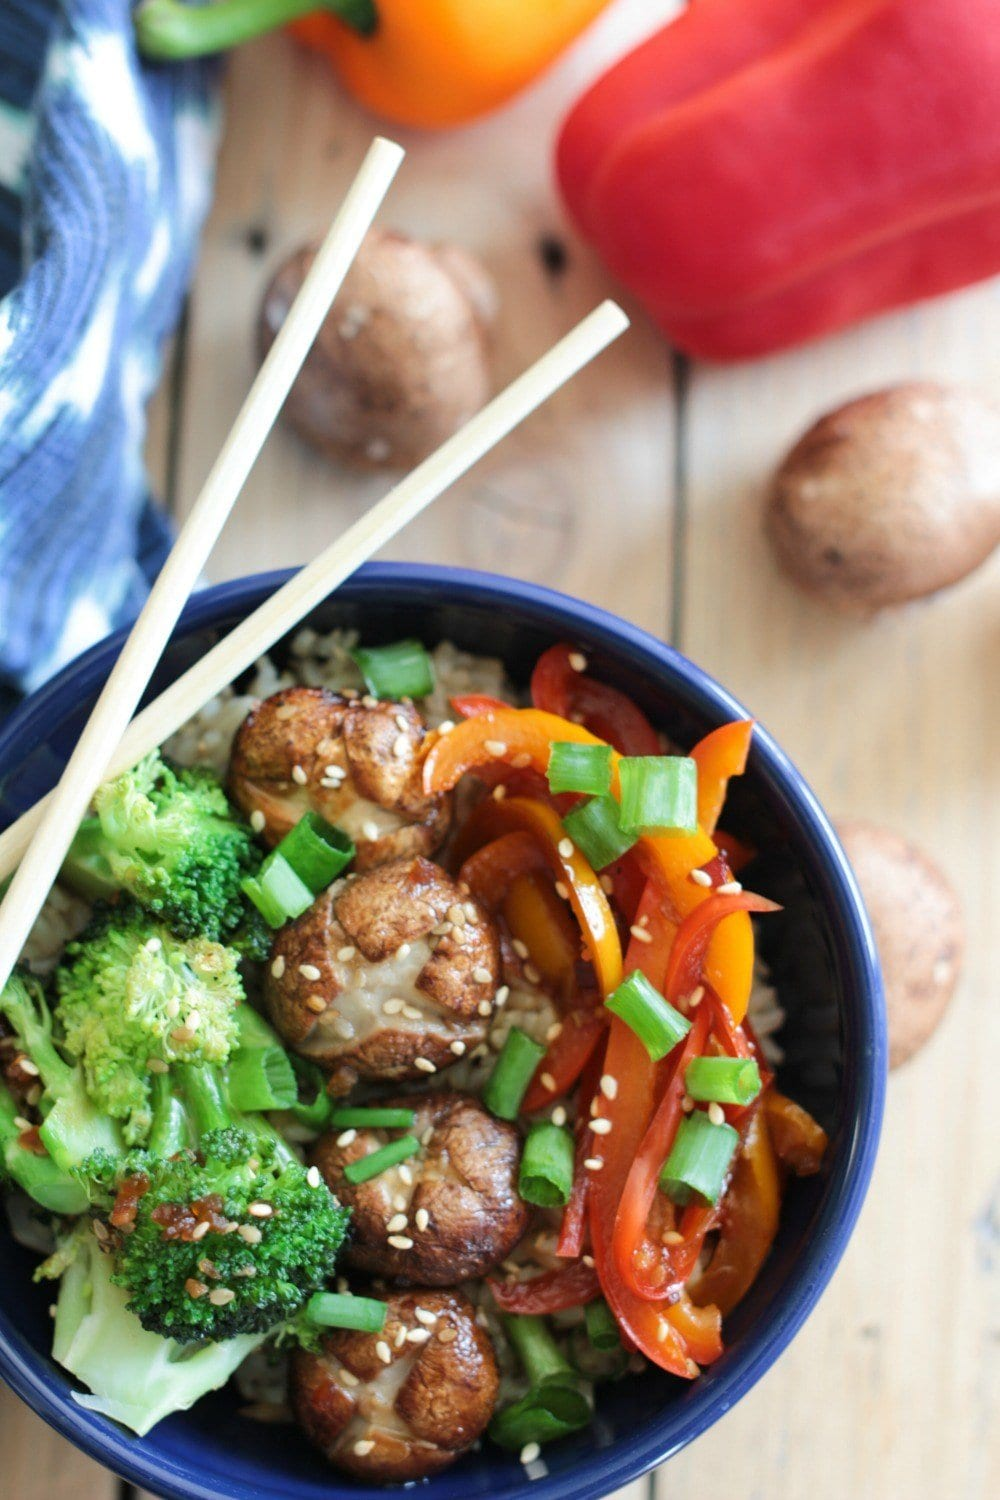 Super Easy Pepper, Broccoli and Whole Mushroom Stir Fry Recipe